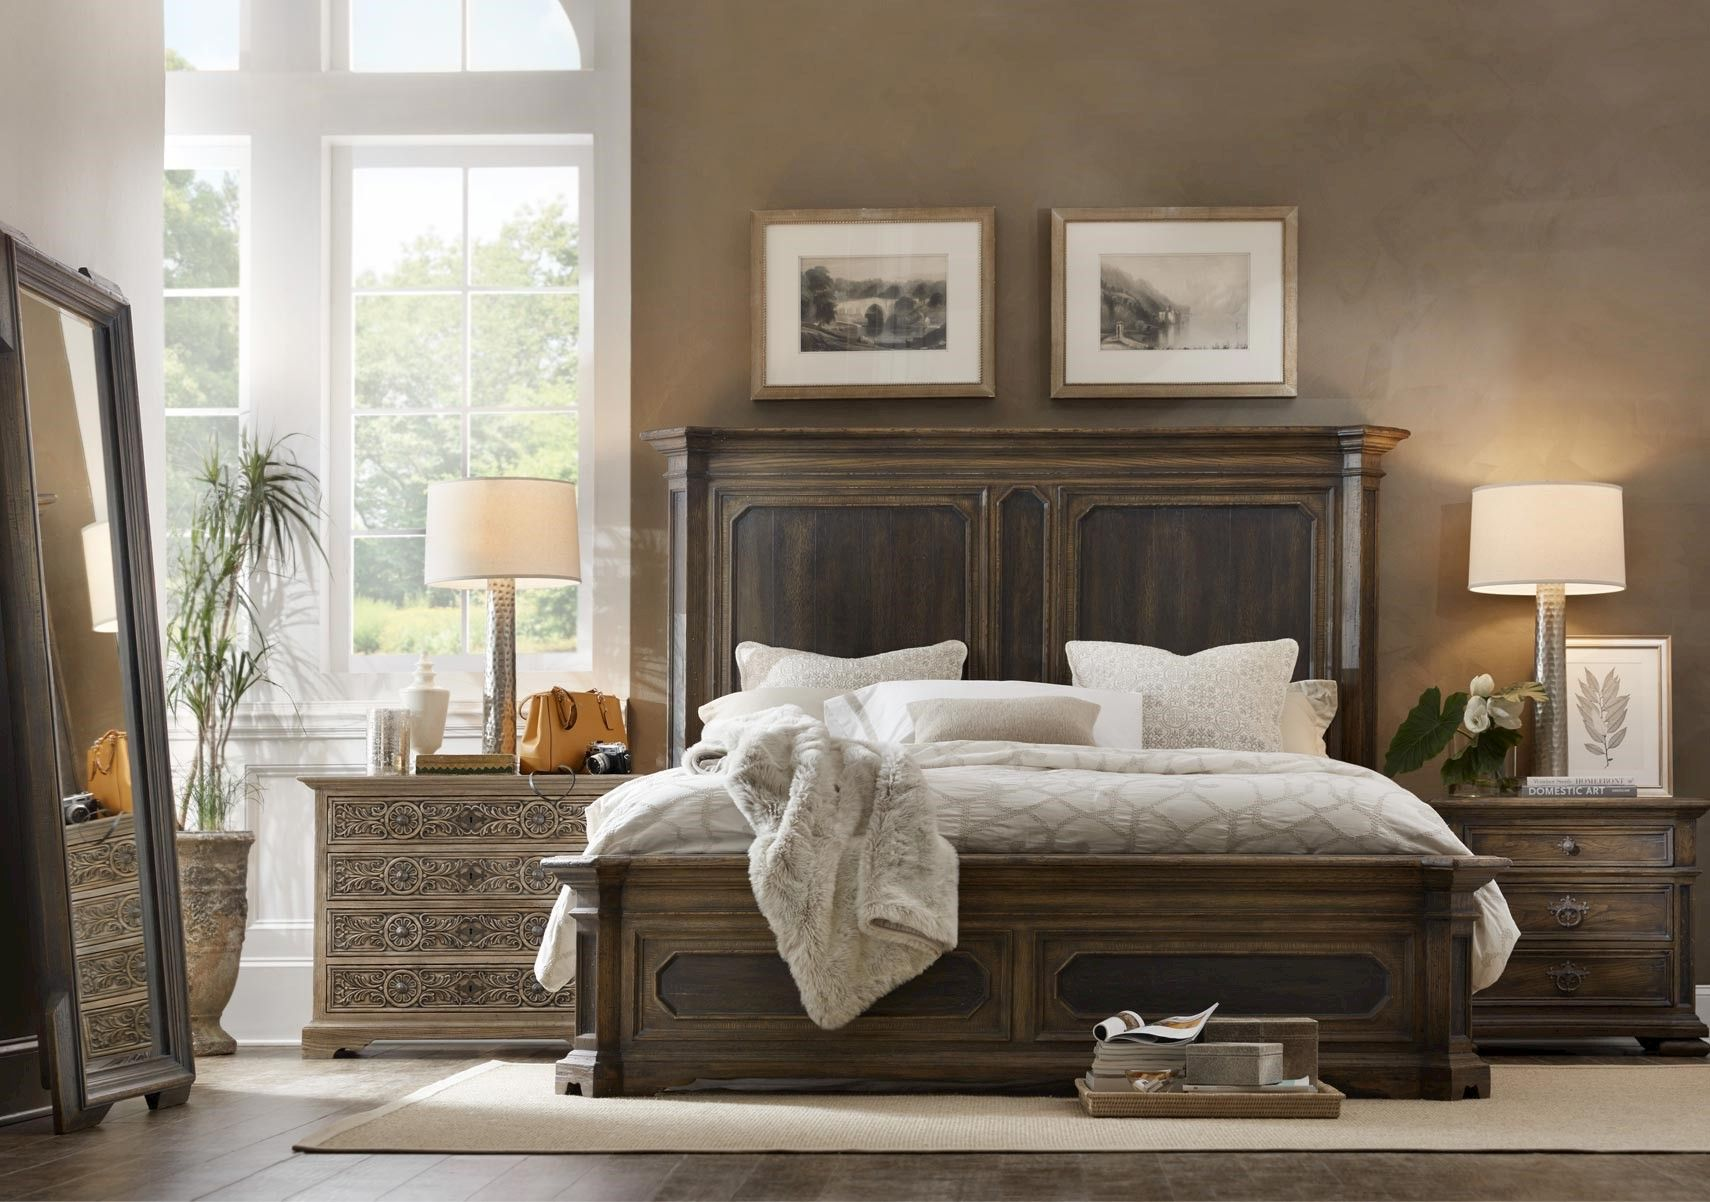 Lacks Hill Country 4 Pc Queen Bedroom Set Furniture Bedroom Furniture Design Country Bedroom